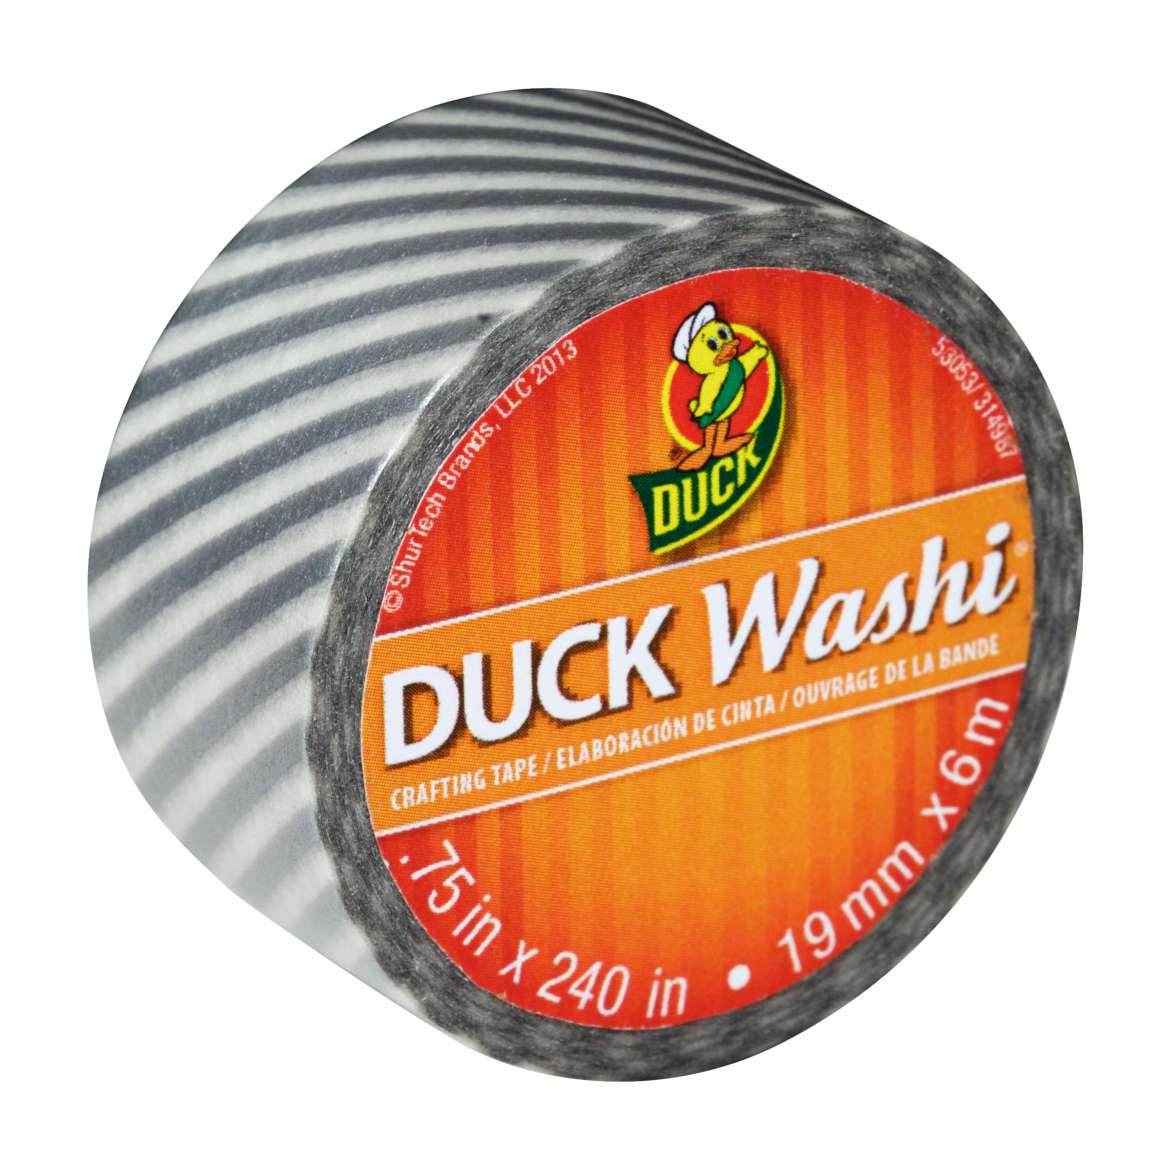 Duck Washi® Crafting Tape - Silver Stripe, .75 in. x 240 in. Image